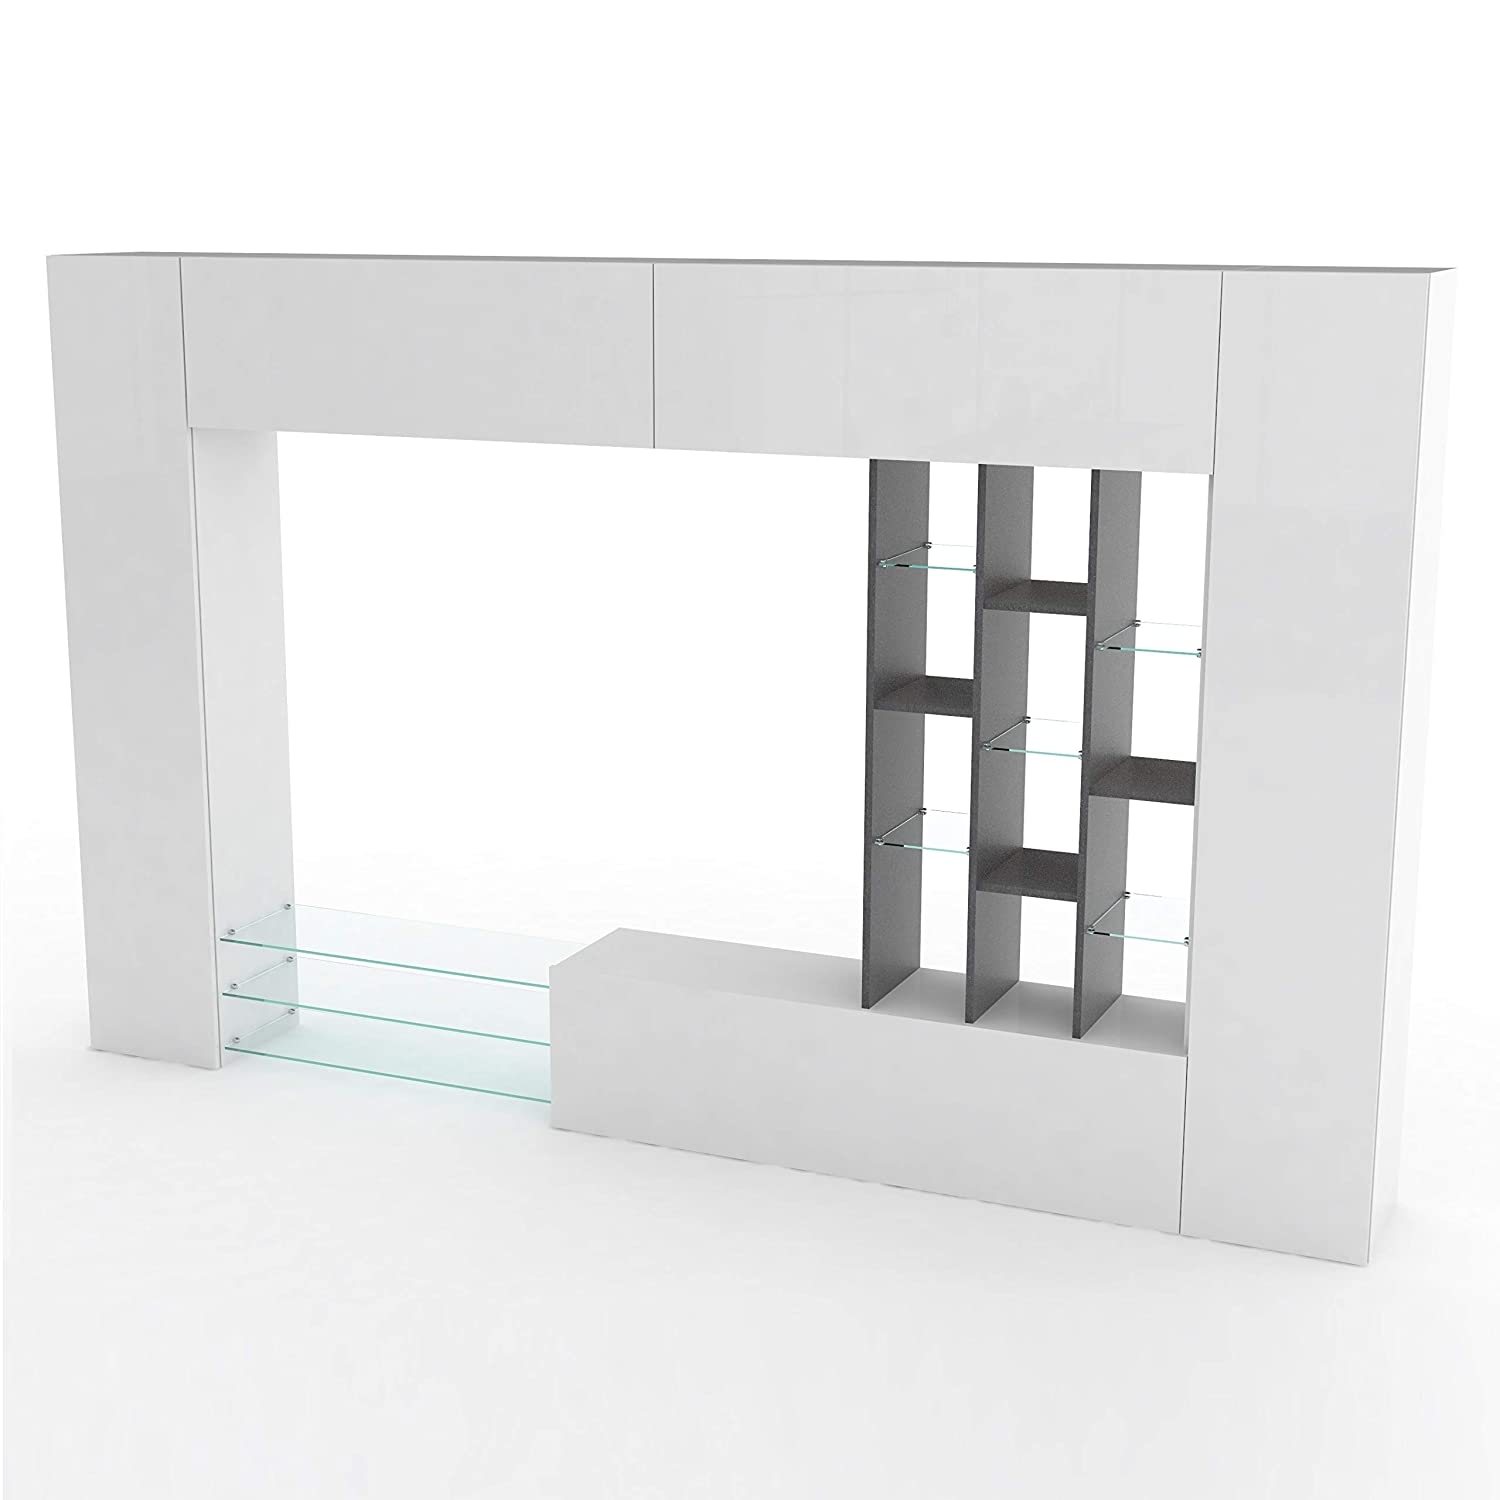 6a176448bd8 Amazon.com  Furniture.Agency White Gloss Full Wall Entertainment Center  with Led